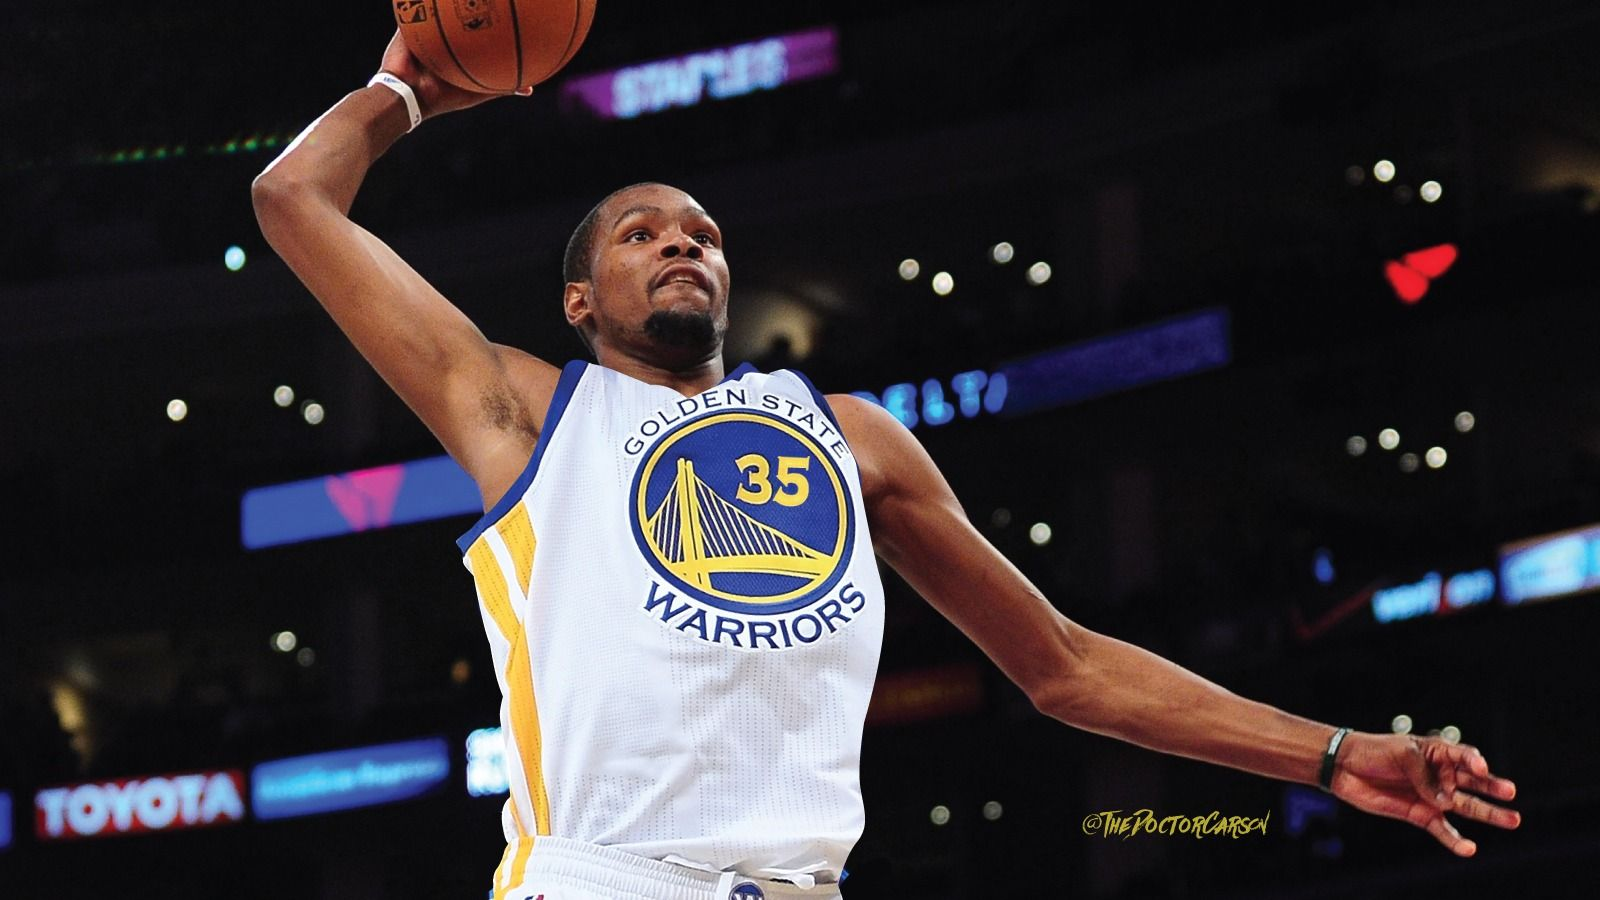 Basketball Kevin Durant Wallpapers Warriors Wallpaper: Kevin Durant Wallpapers